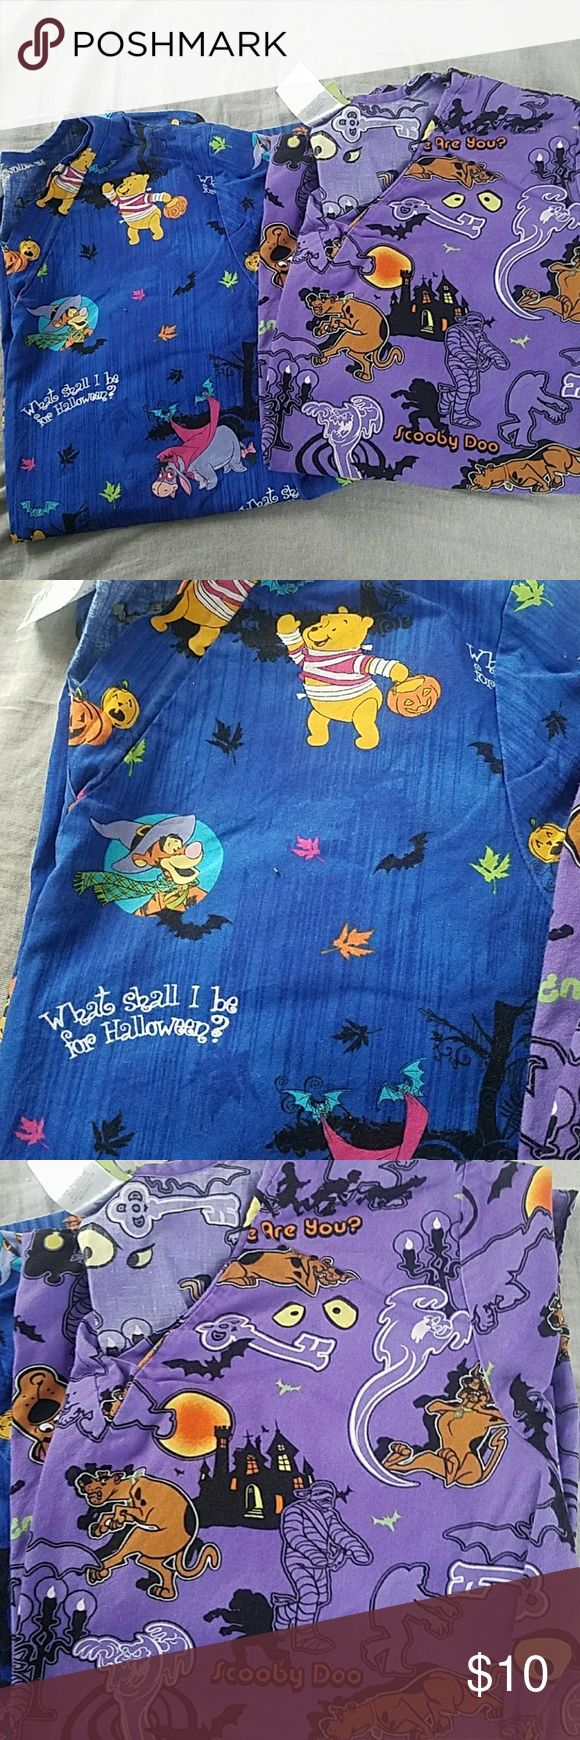 Cartoon Halloween scrubs Pooh Bear and Scooby Foo Halloween scrubs. 2 front pockets. Smoke free home. Other